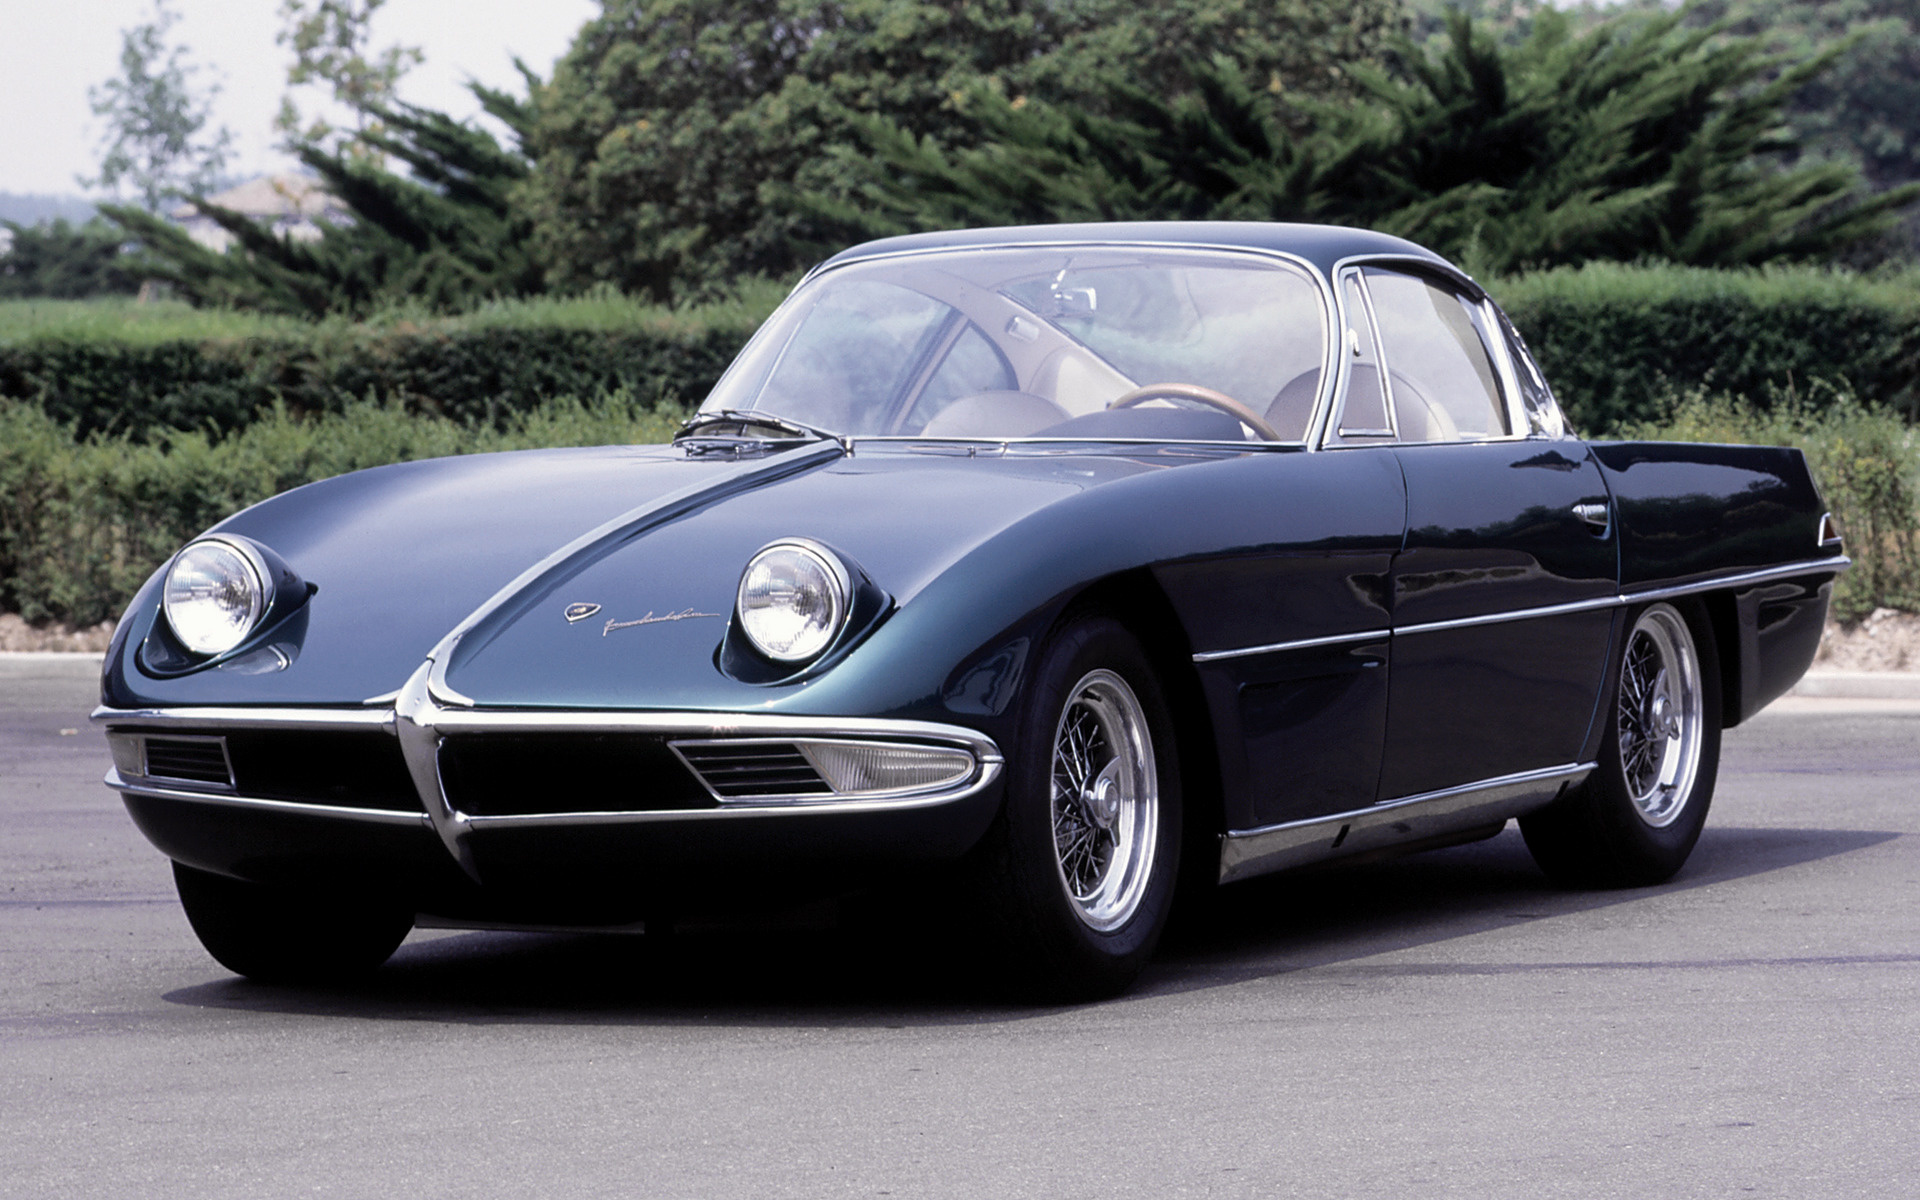 Lamborghini 350 GTV Prototype (1963) Wallpapers and HD ...